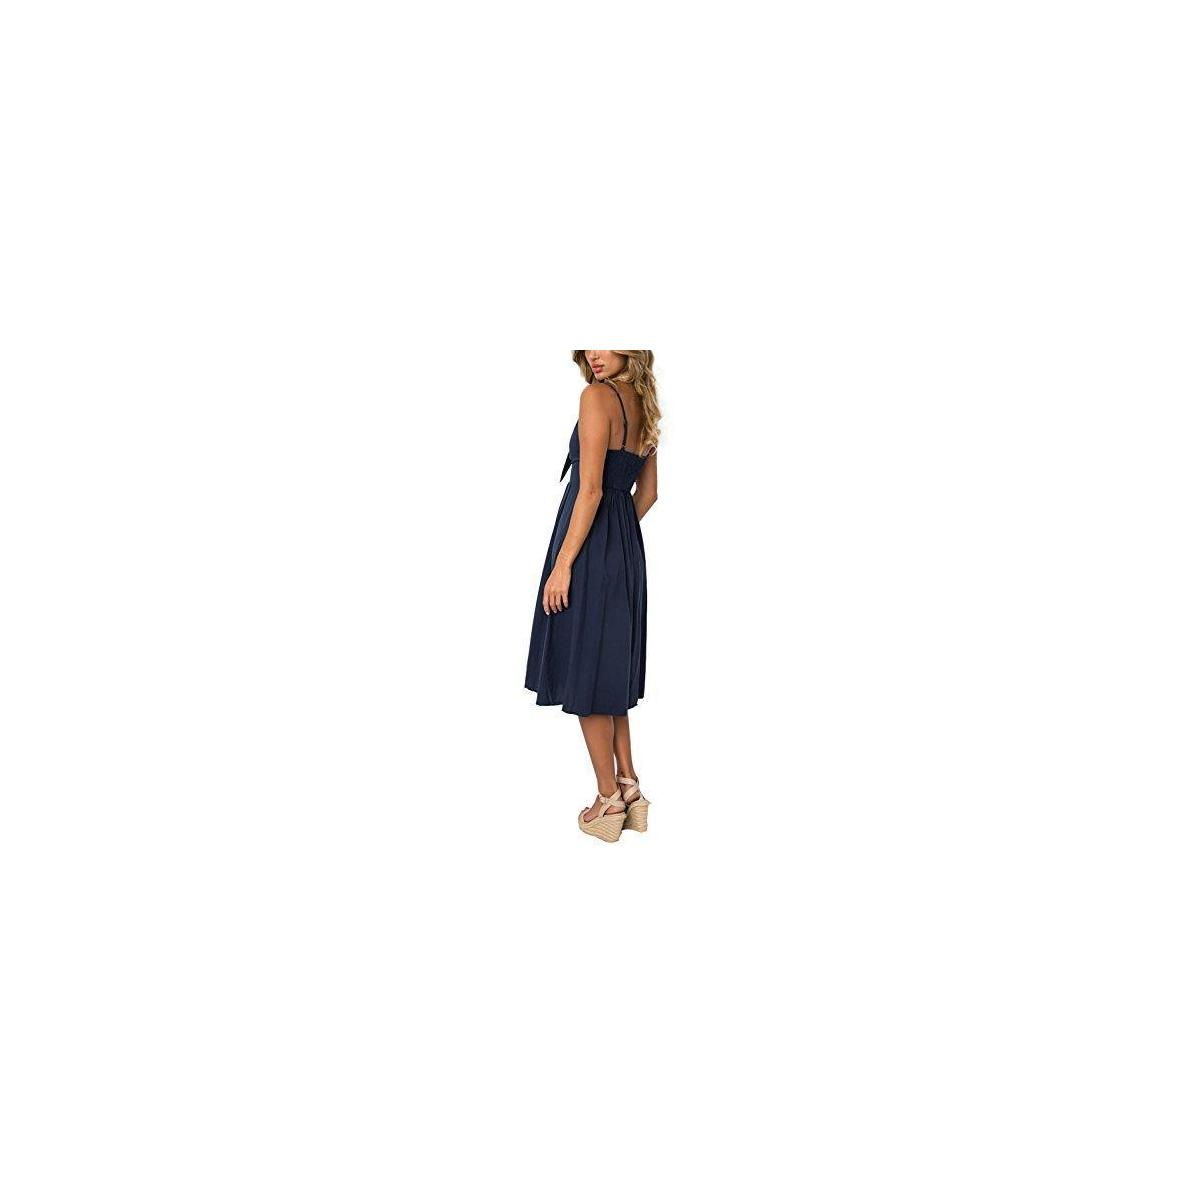 Women's Summer Dresses V-Neck Spaghetti Strap Button Down Tie Front A-Line Backless Swing Midi Dress